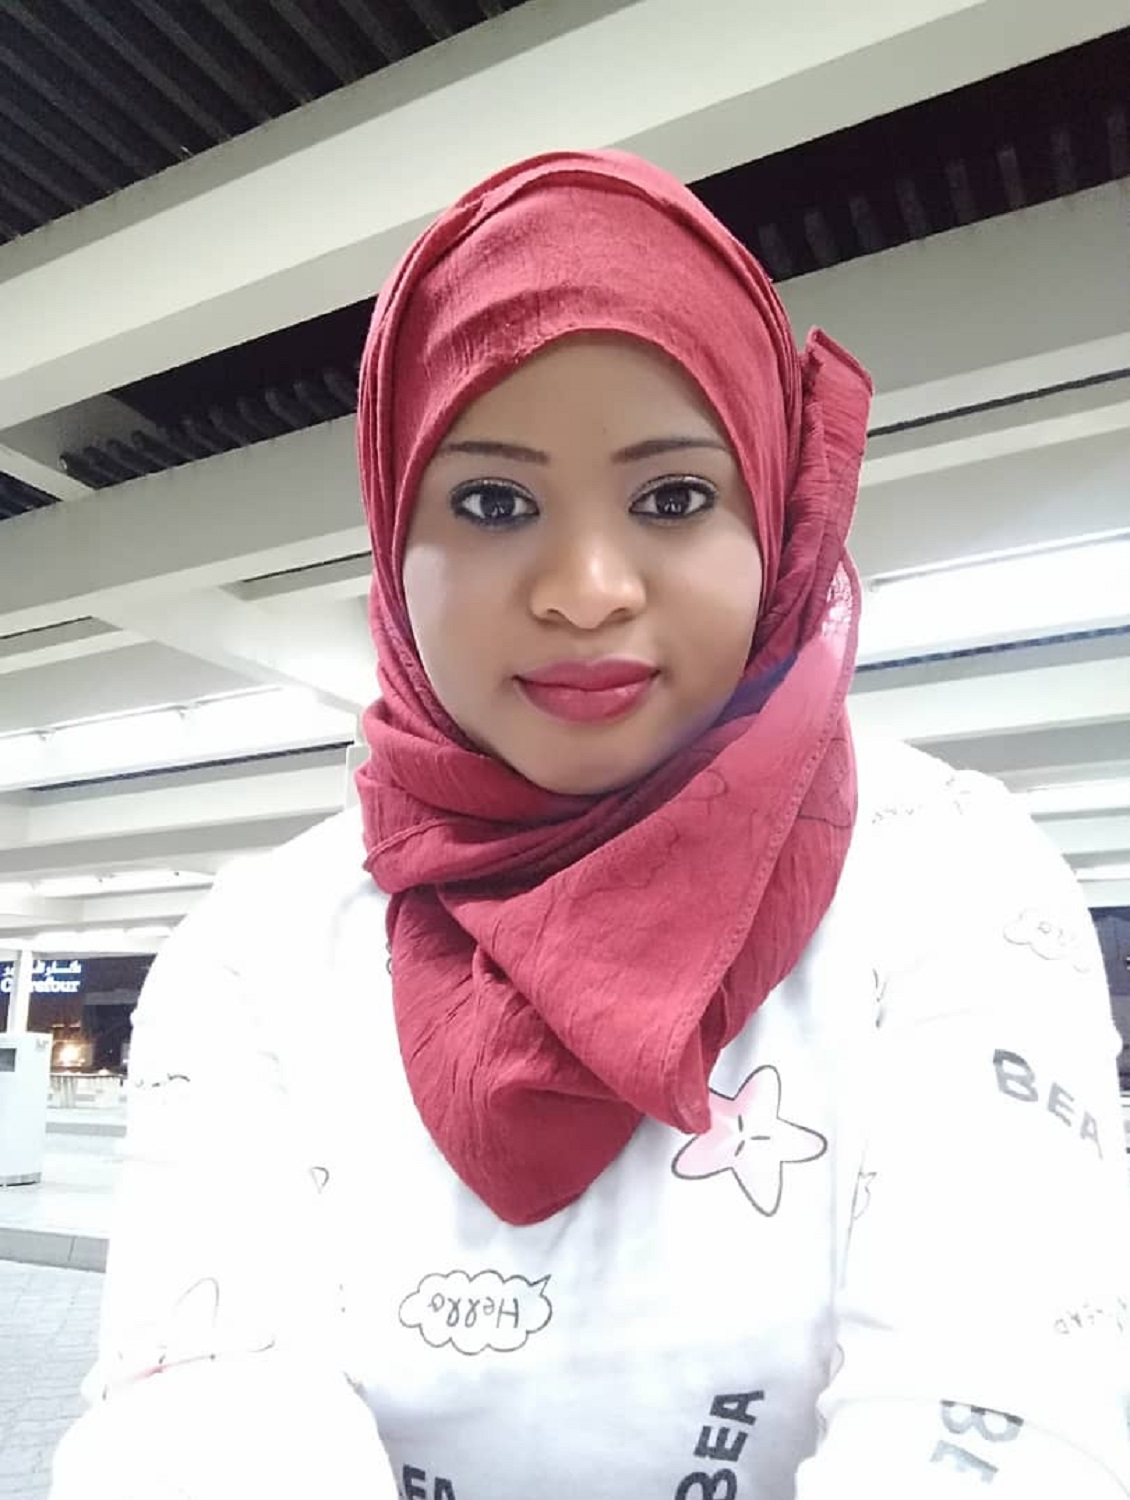 I delivered before flight attendants got to me, woman who delivered aboard UAE says